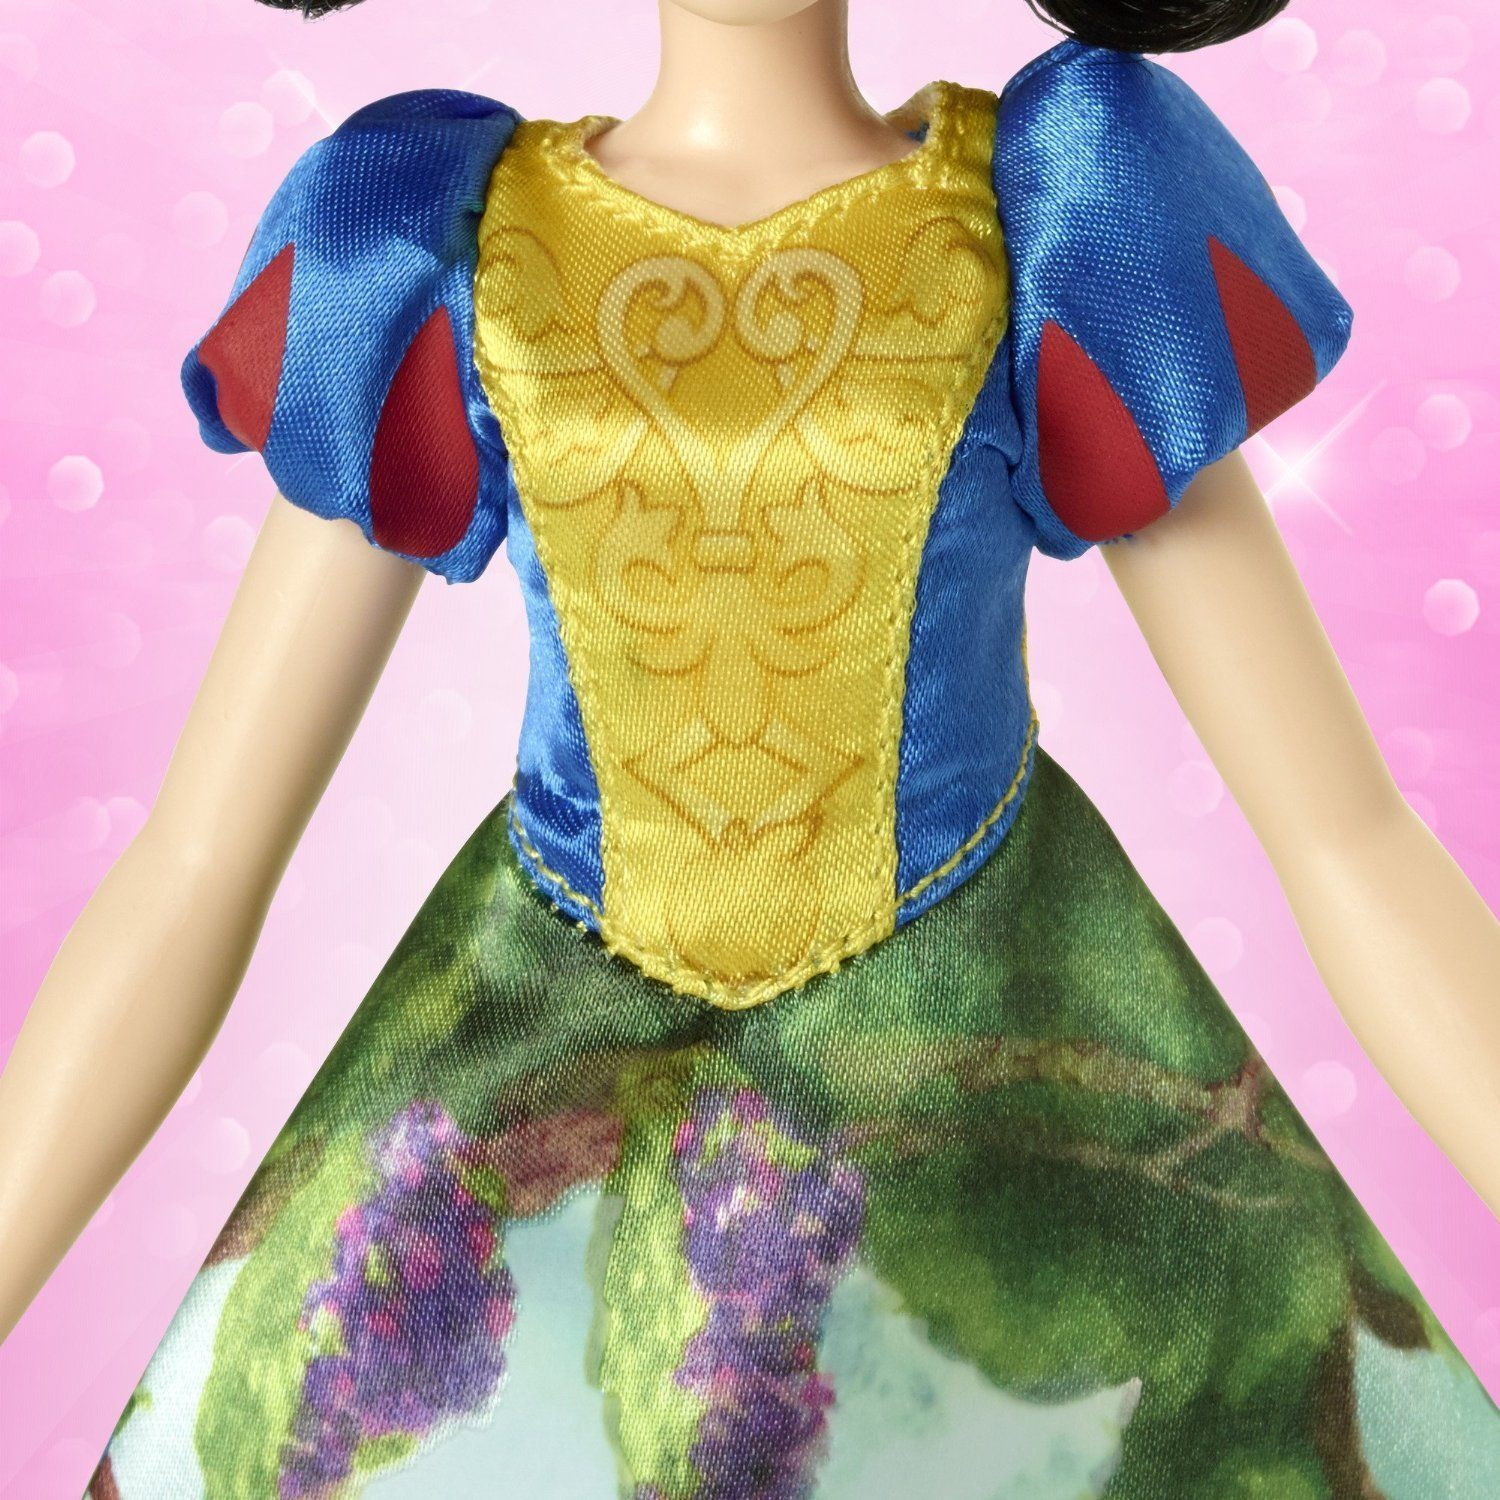 Image 4 of Disney Princess Snow White Magical Story Skirt Doll in Blue, Yellow by Hasbro